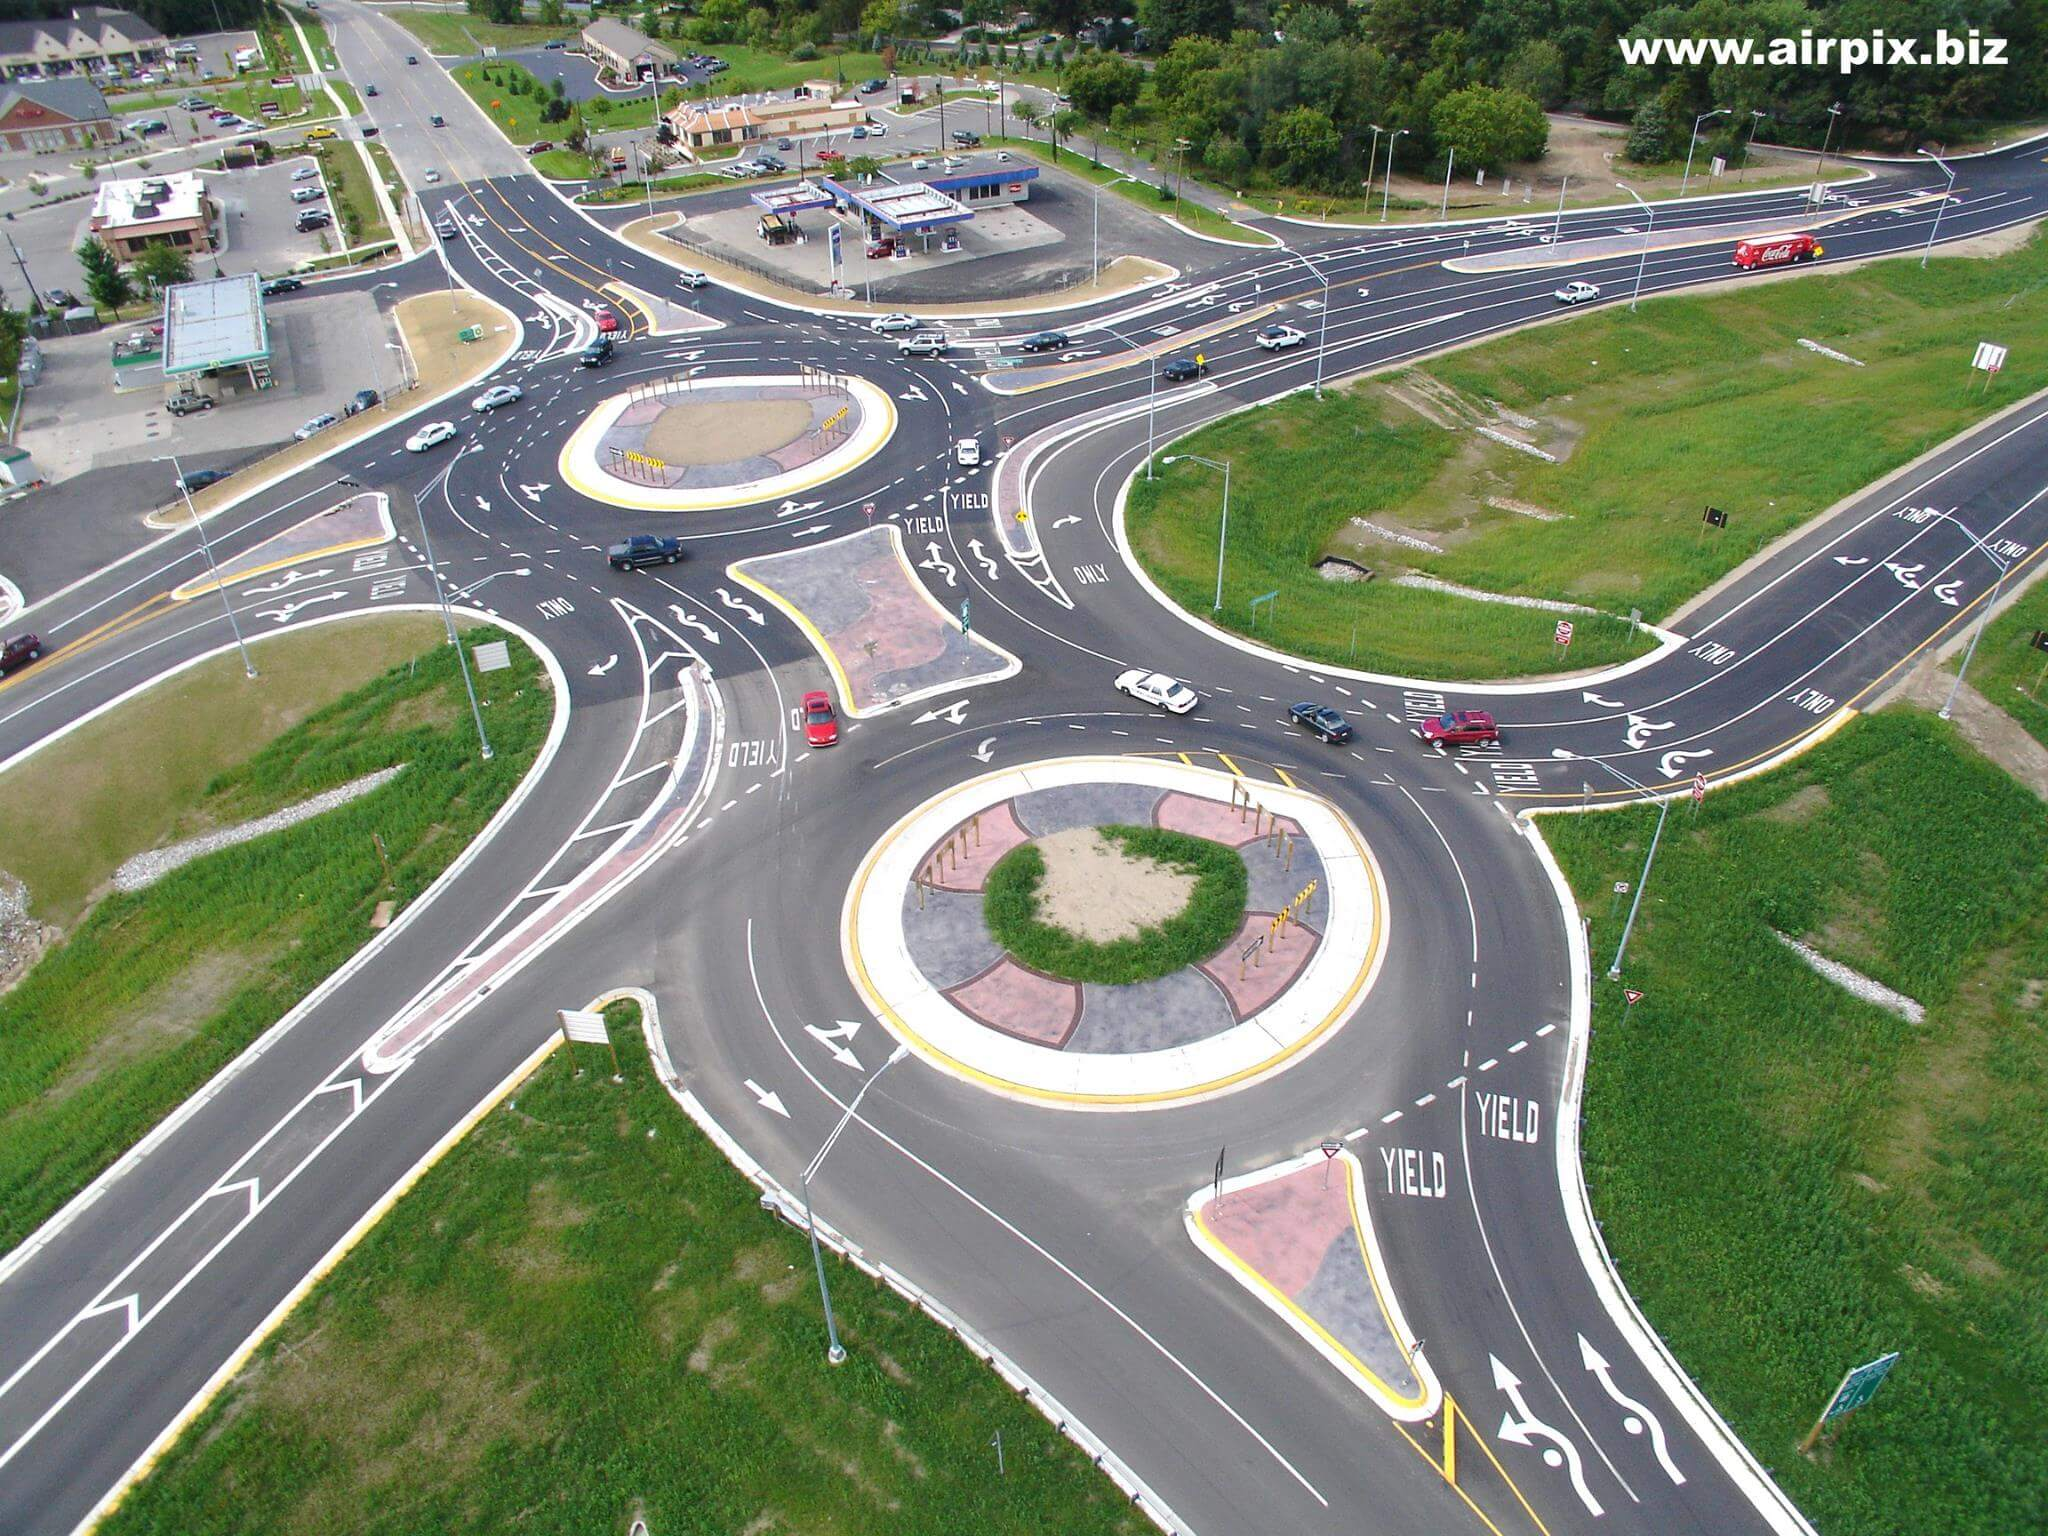 What Do You Think About The Green Oak Roundabouts